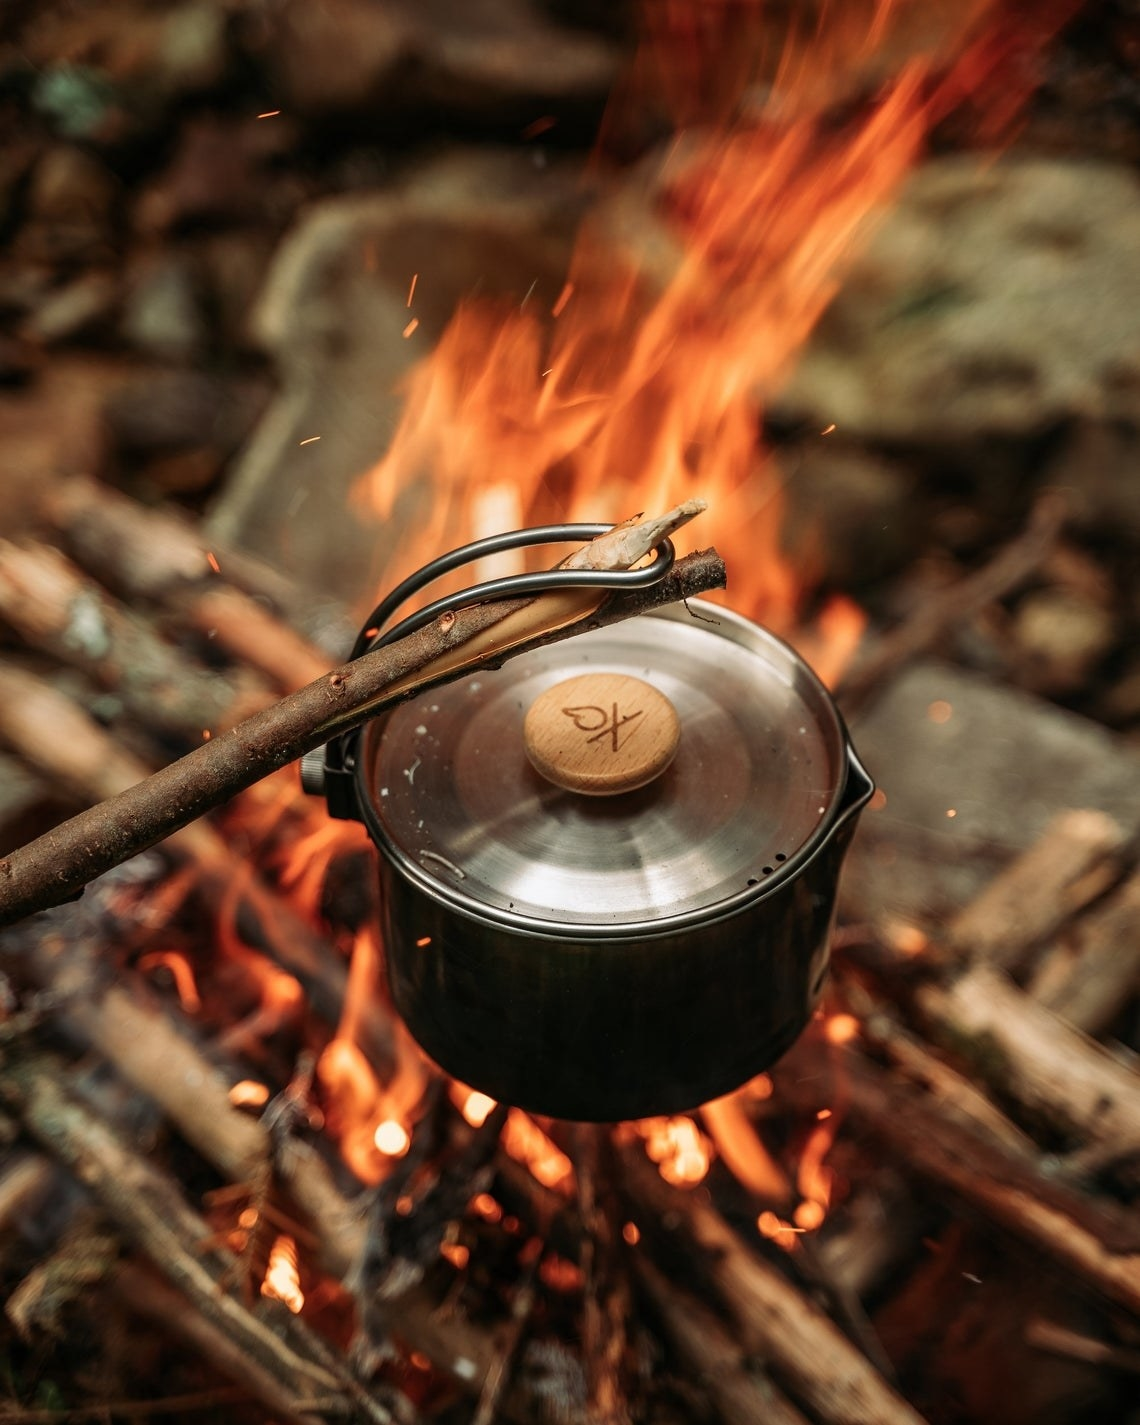 the pot held over a fire with a stick